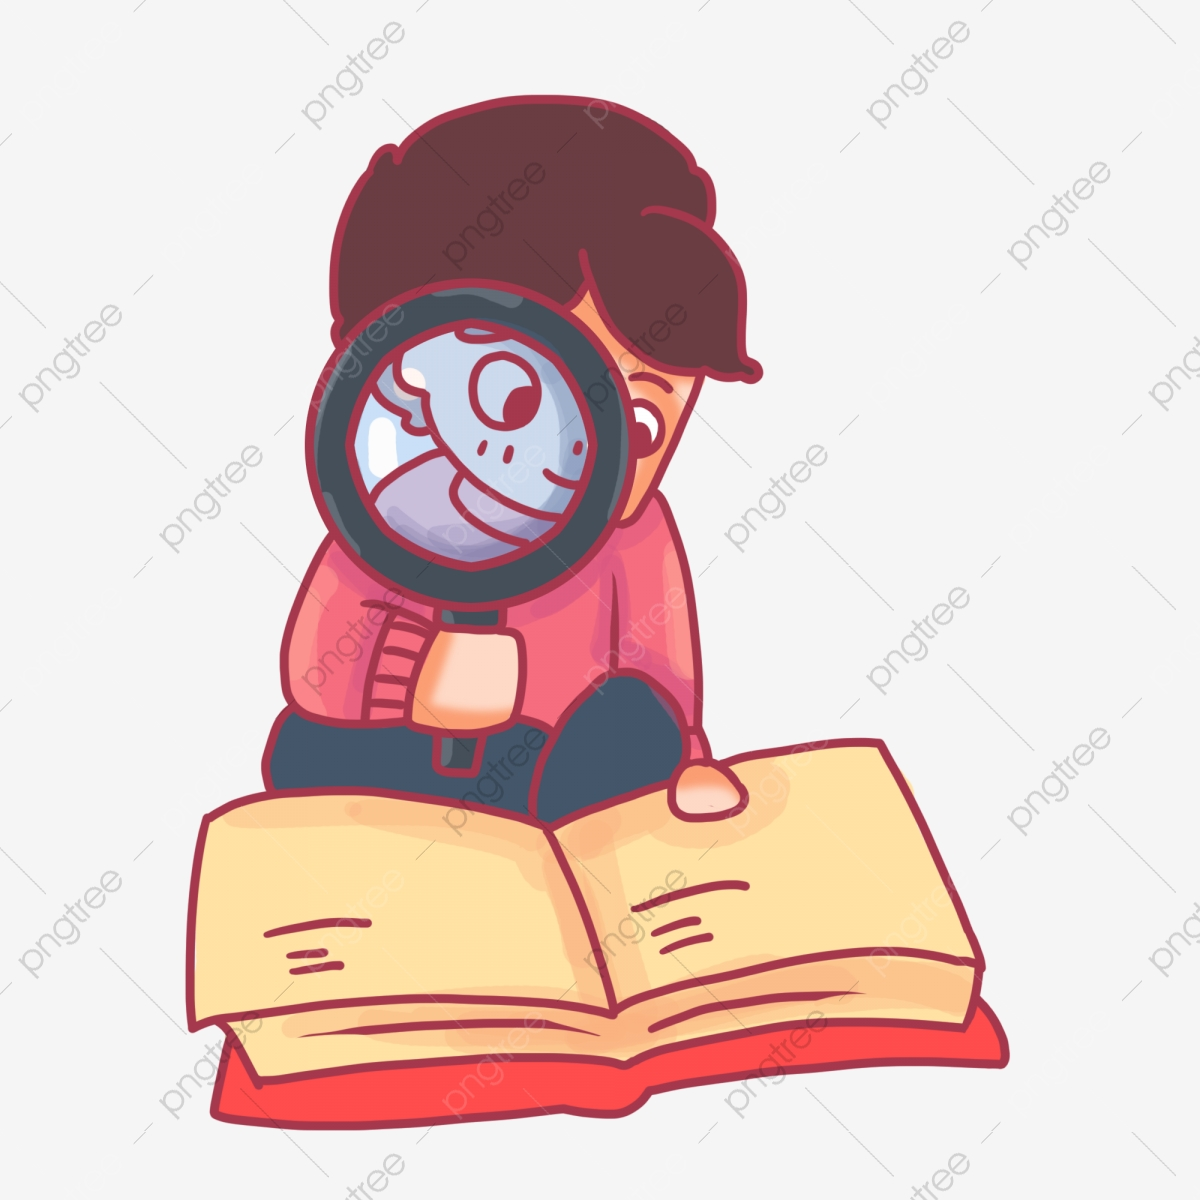 Image result for magnifying glass book cartoon